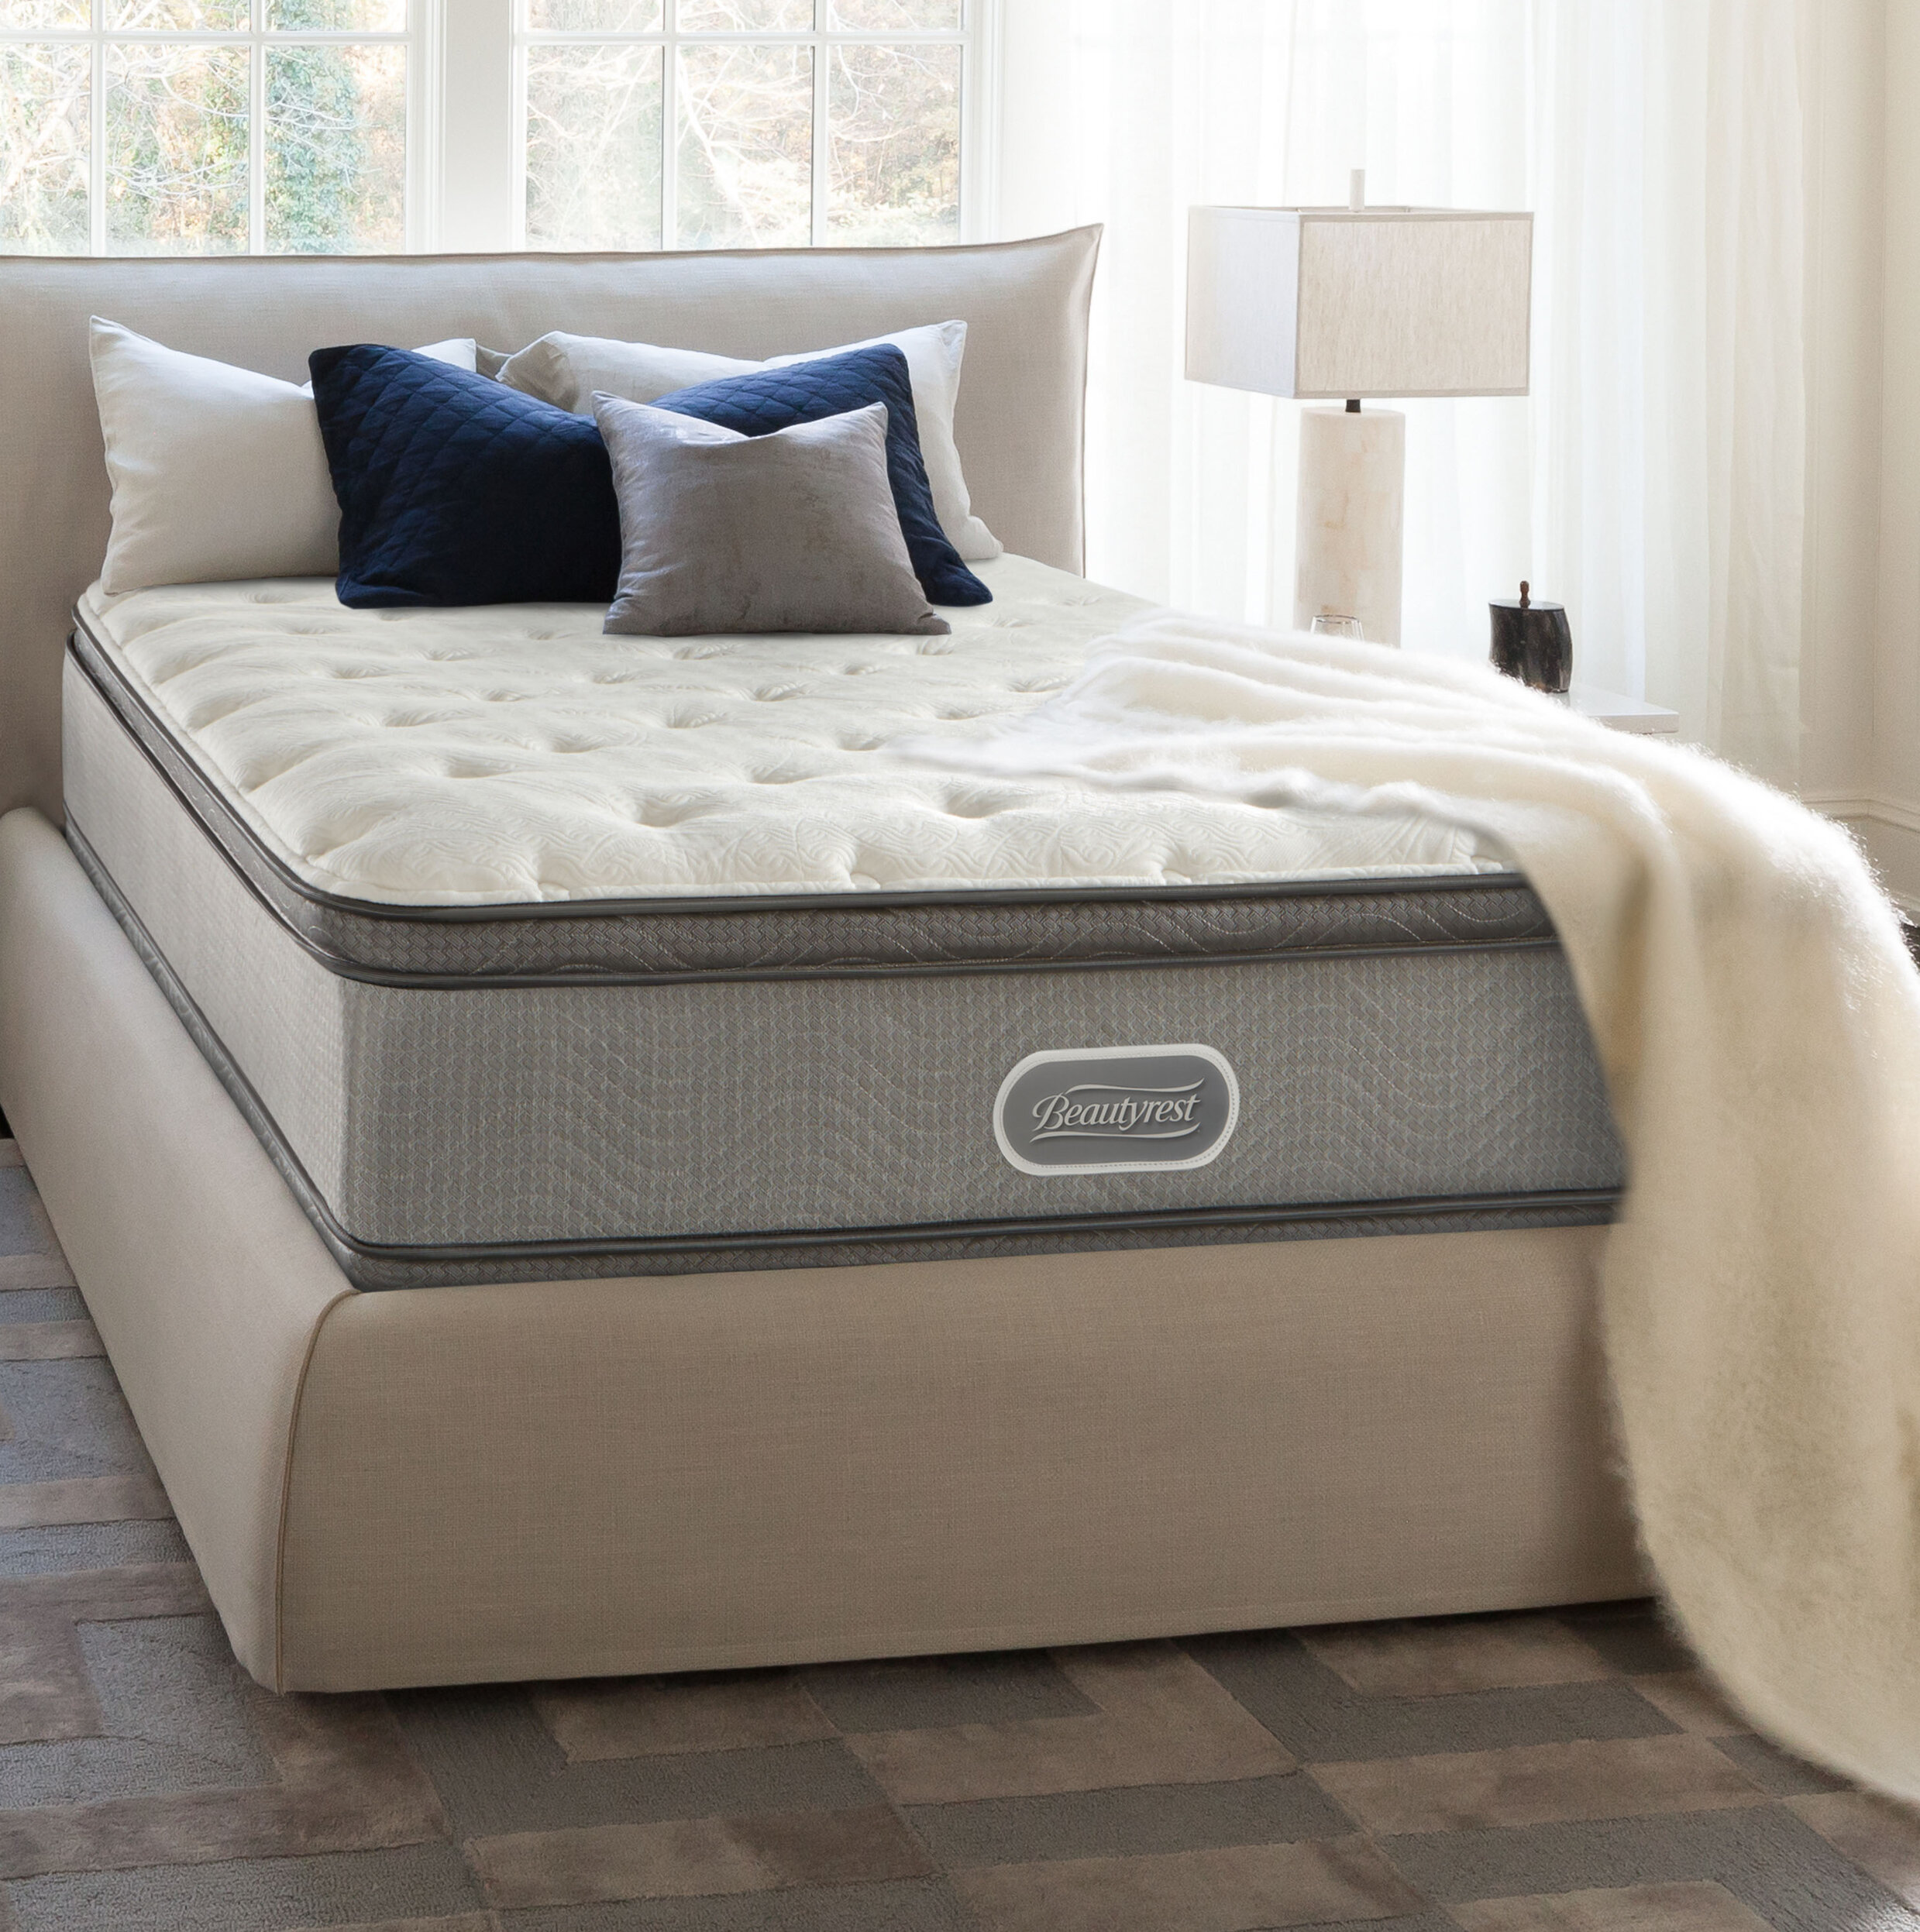 memory dimensions topper spring full king box walmart and pillow amazon foam mattress top size